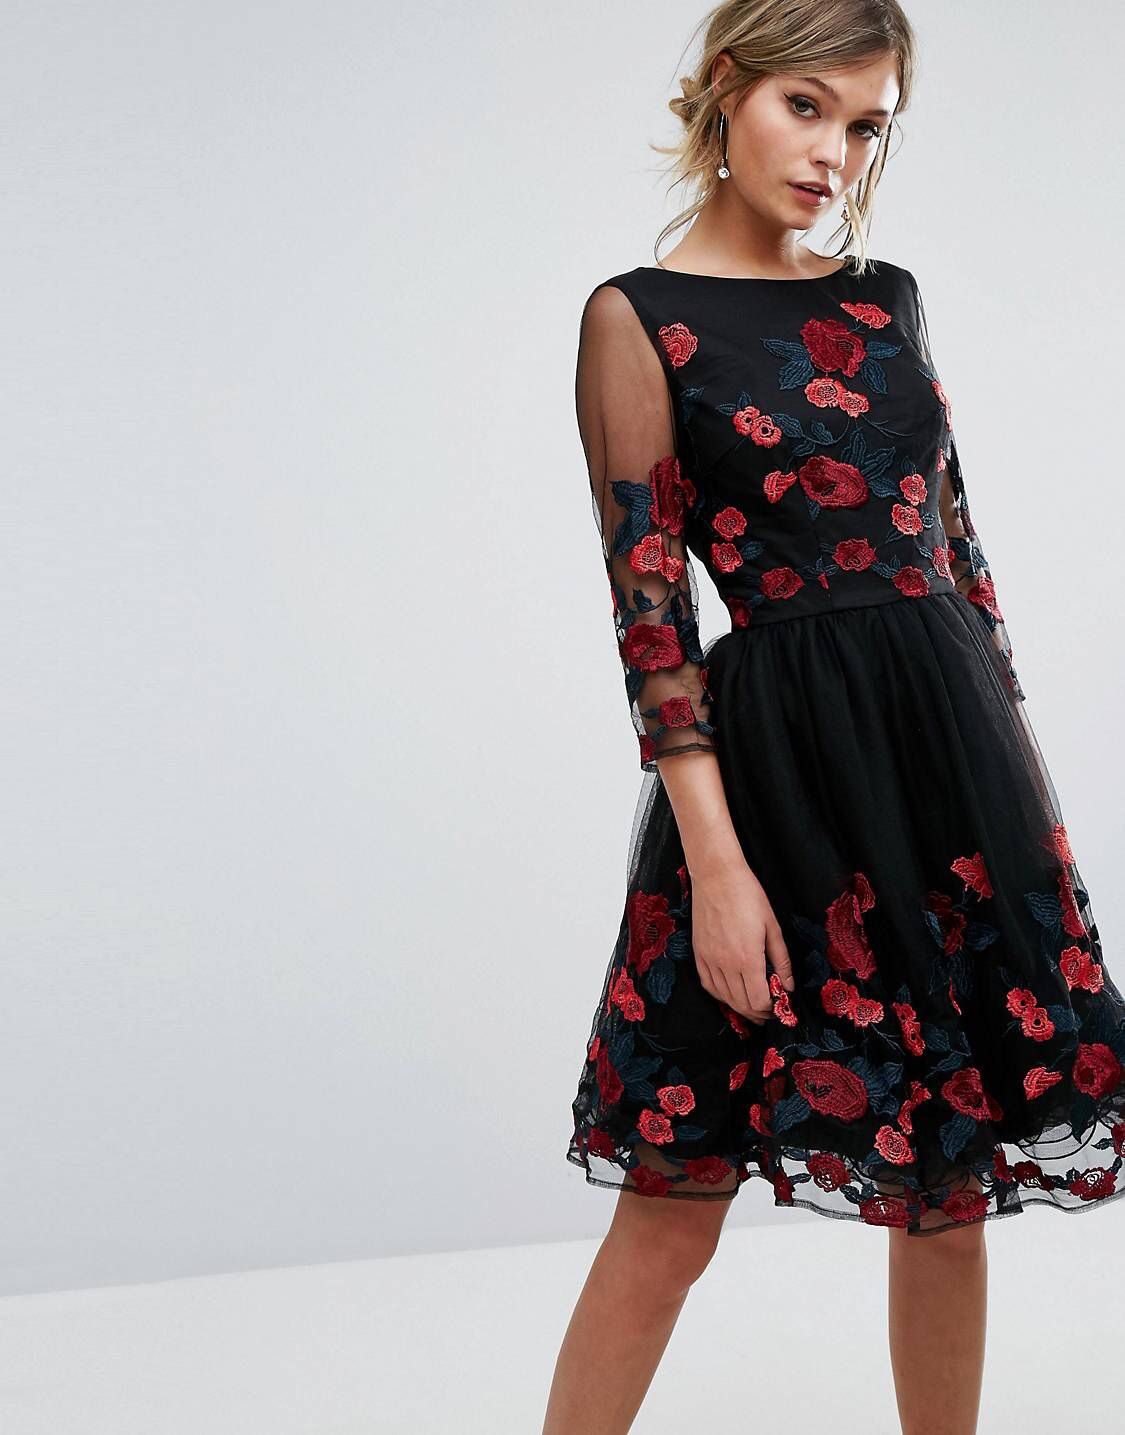 Chi chi london long sleeve prom dress with floral embroidery never